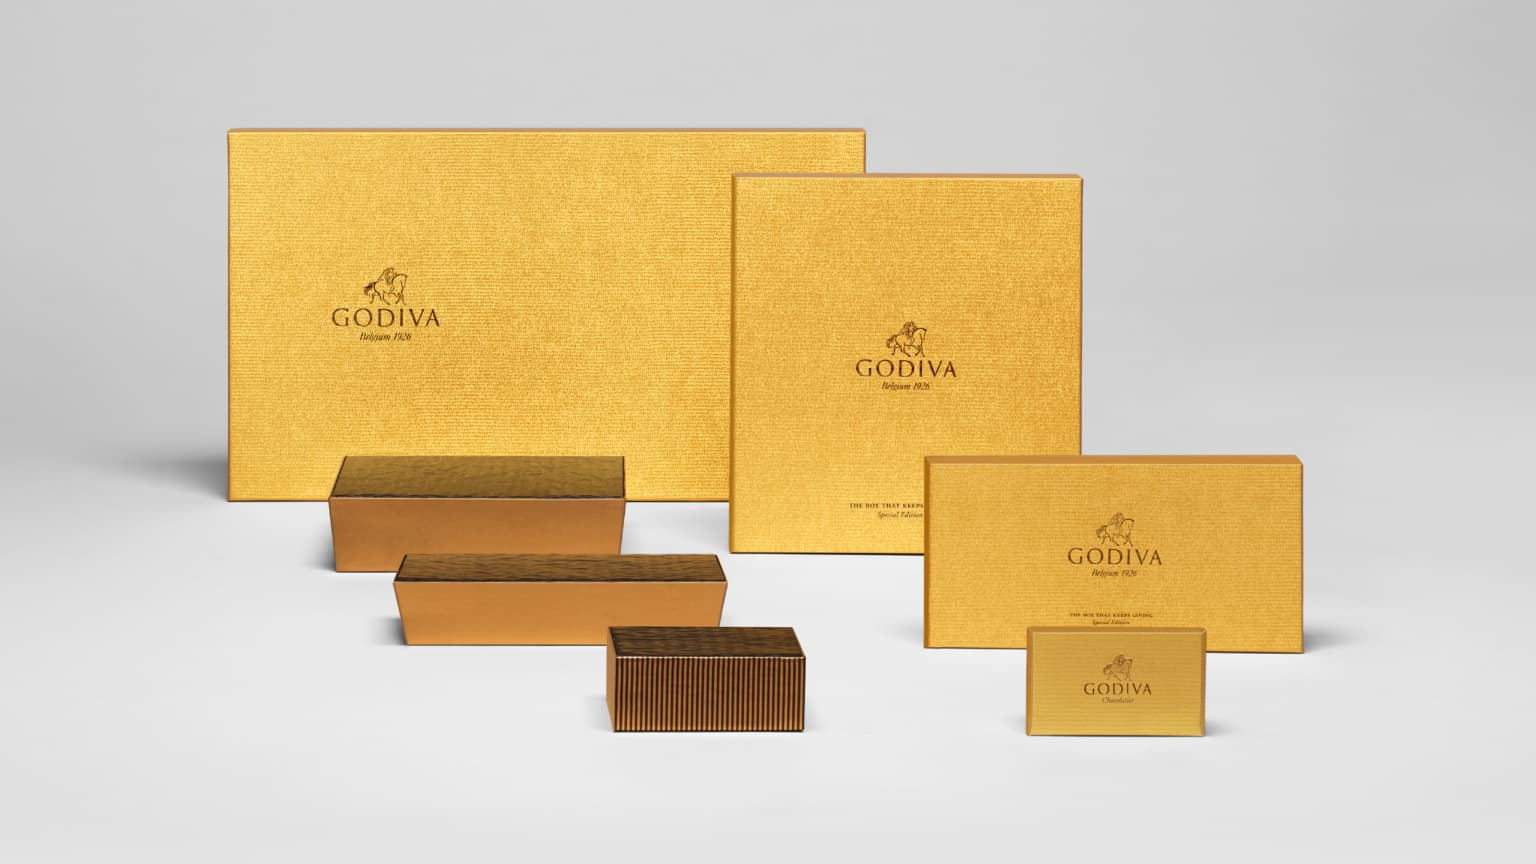 """Godiva """"The Box that Keeps Giving"""""""